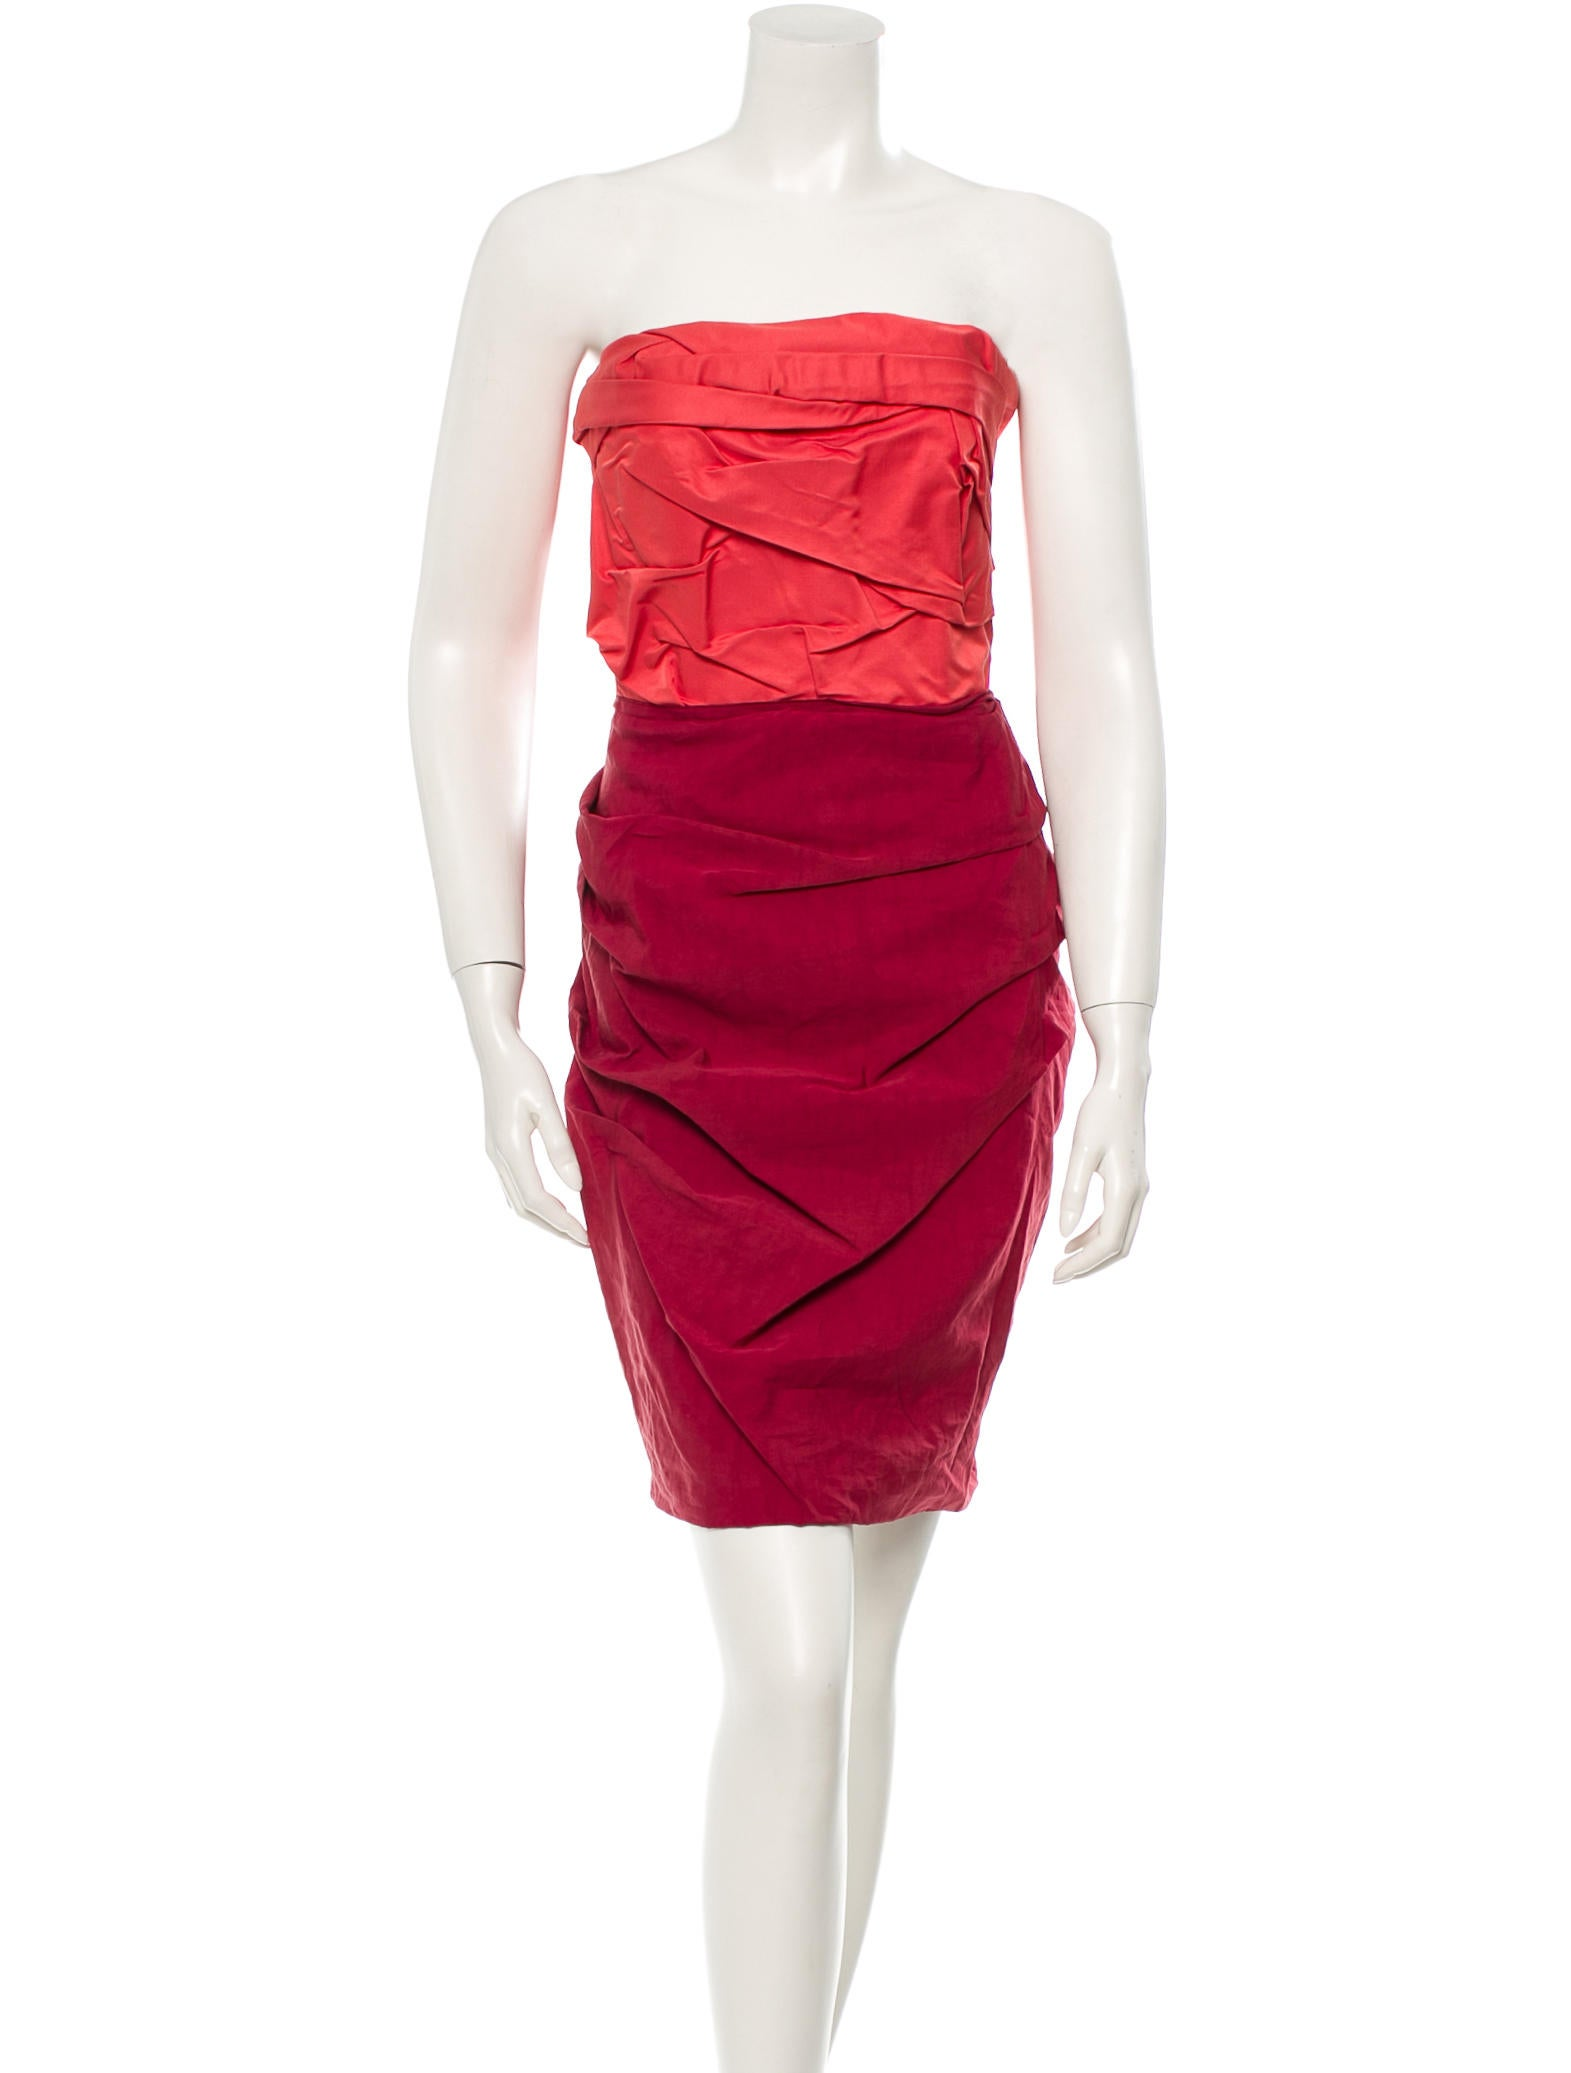 products women clothing dresses lanvin deconstructed cocktail dress